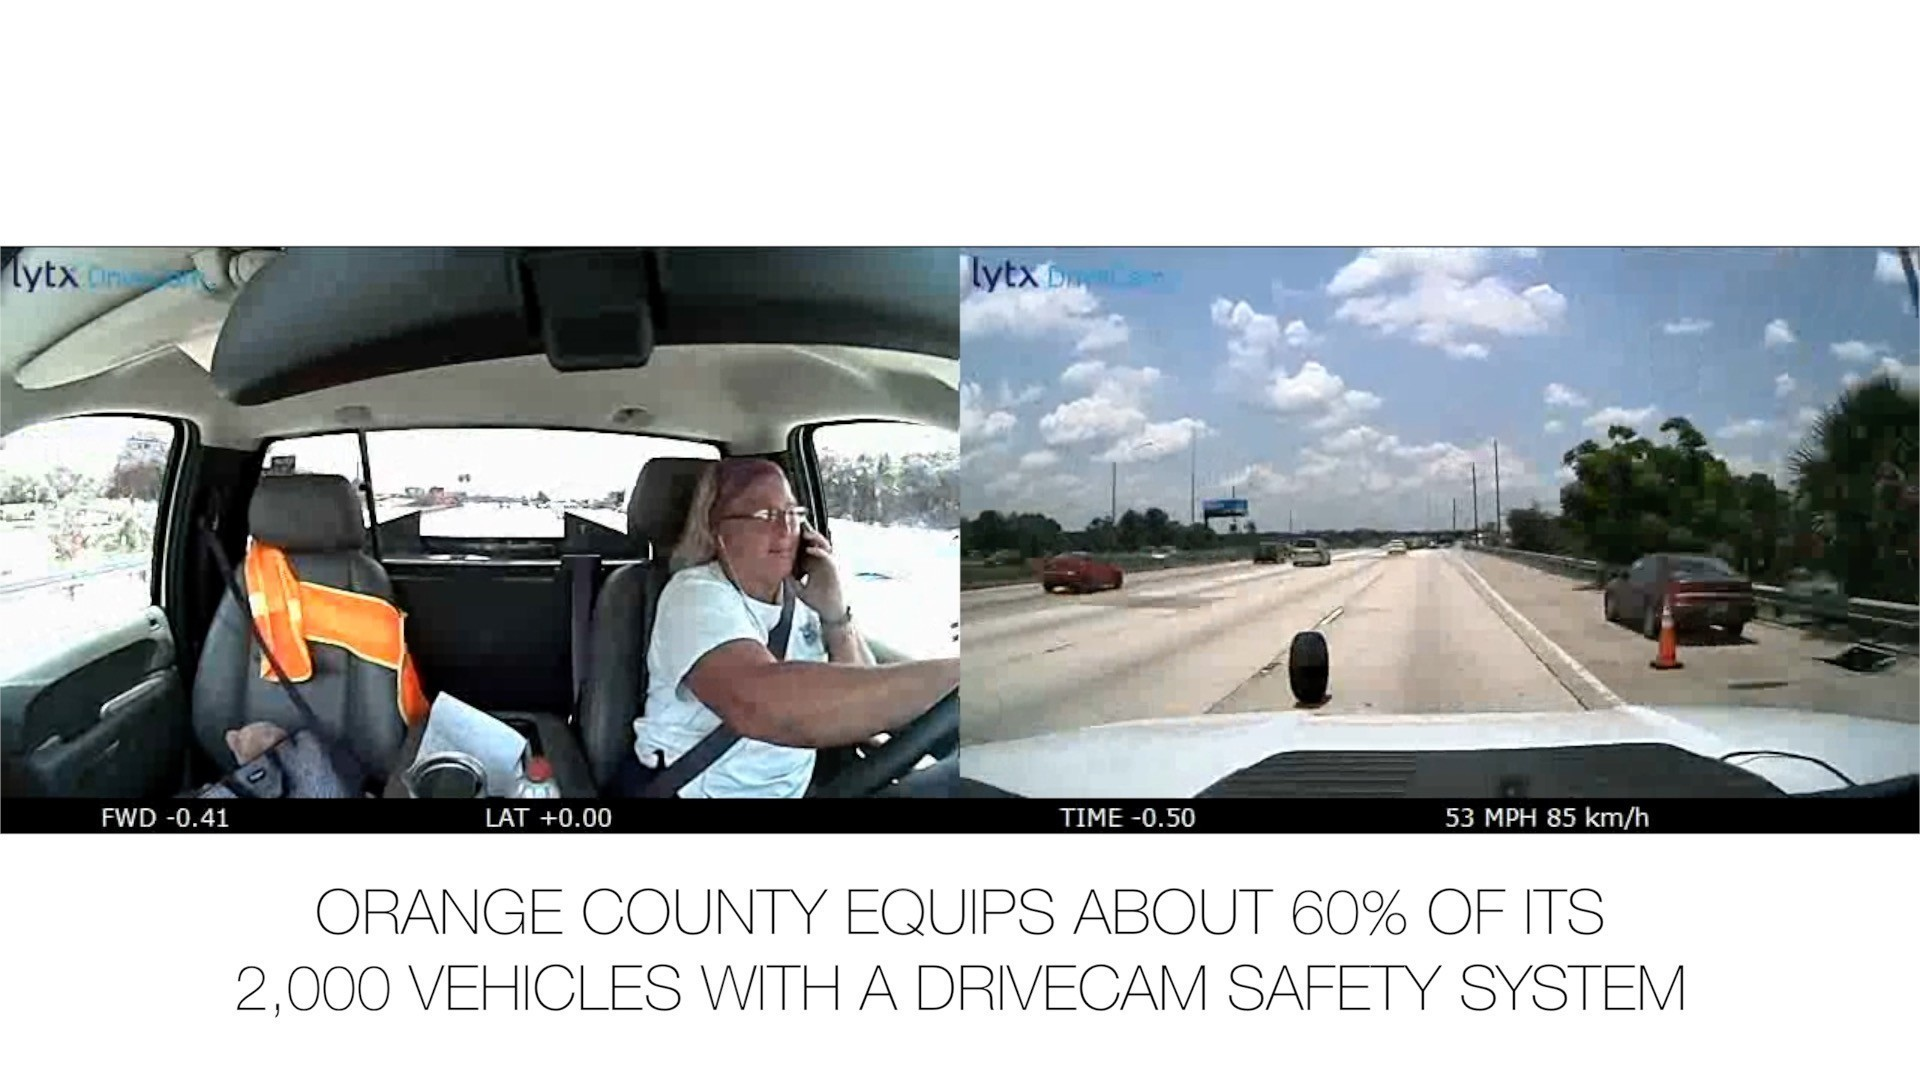 DriveCam system captures accidents in Orange County vehicles